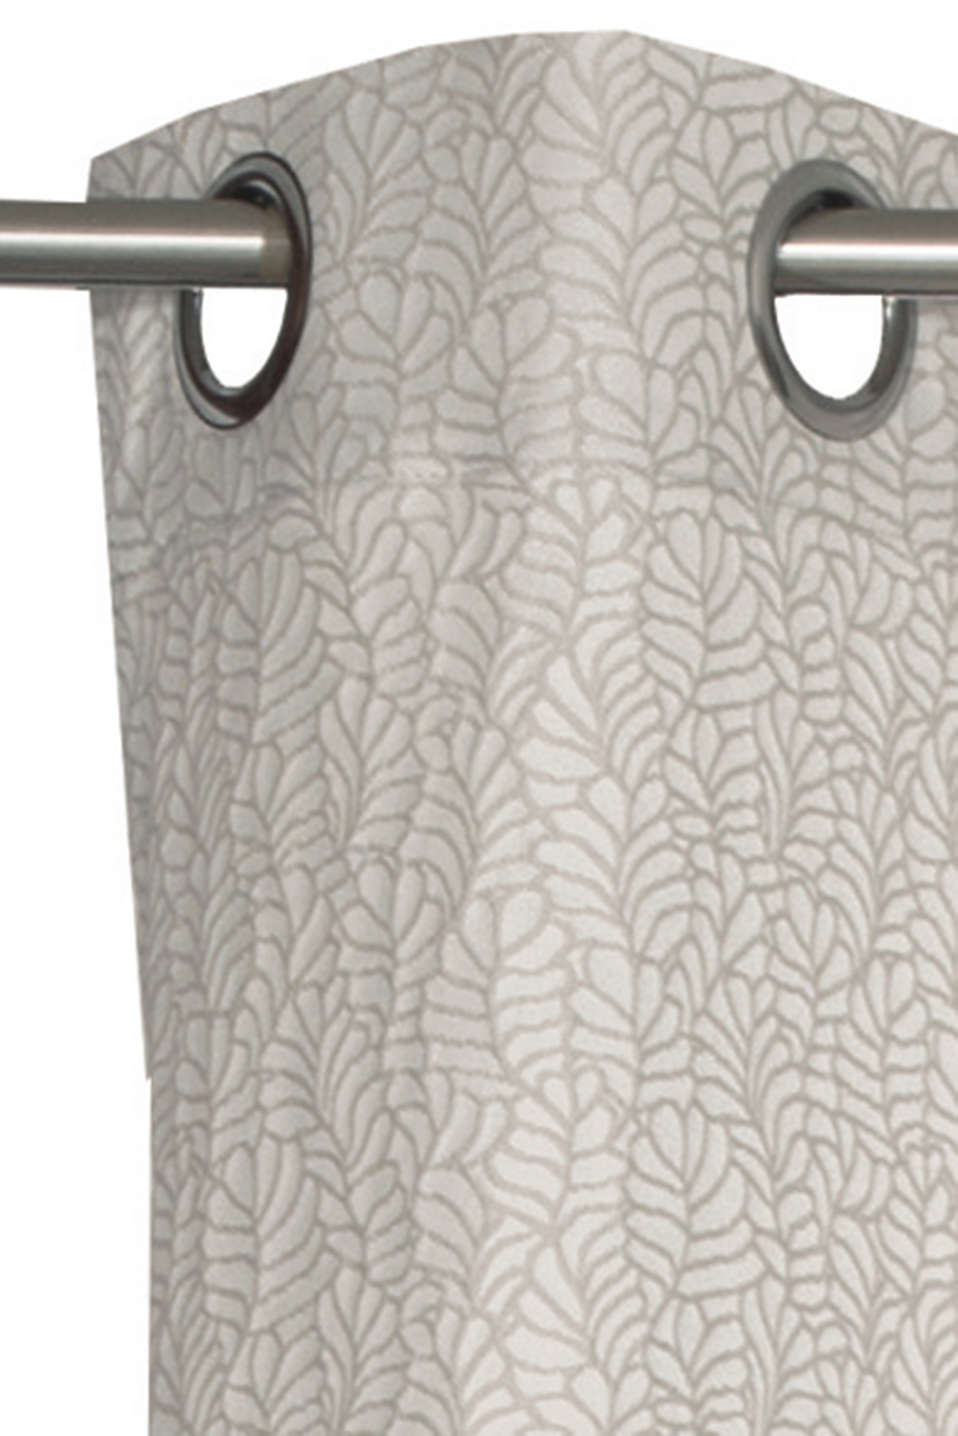 Jacquard eyelet curtain with a leaf motif